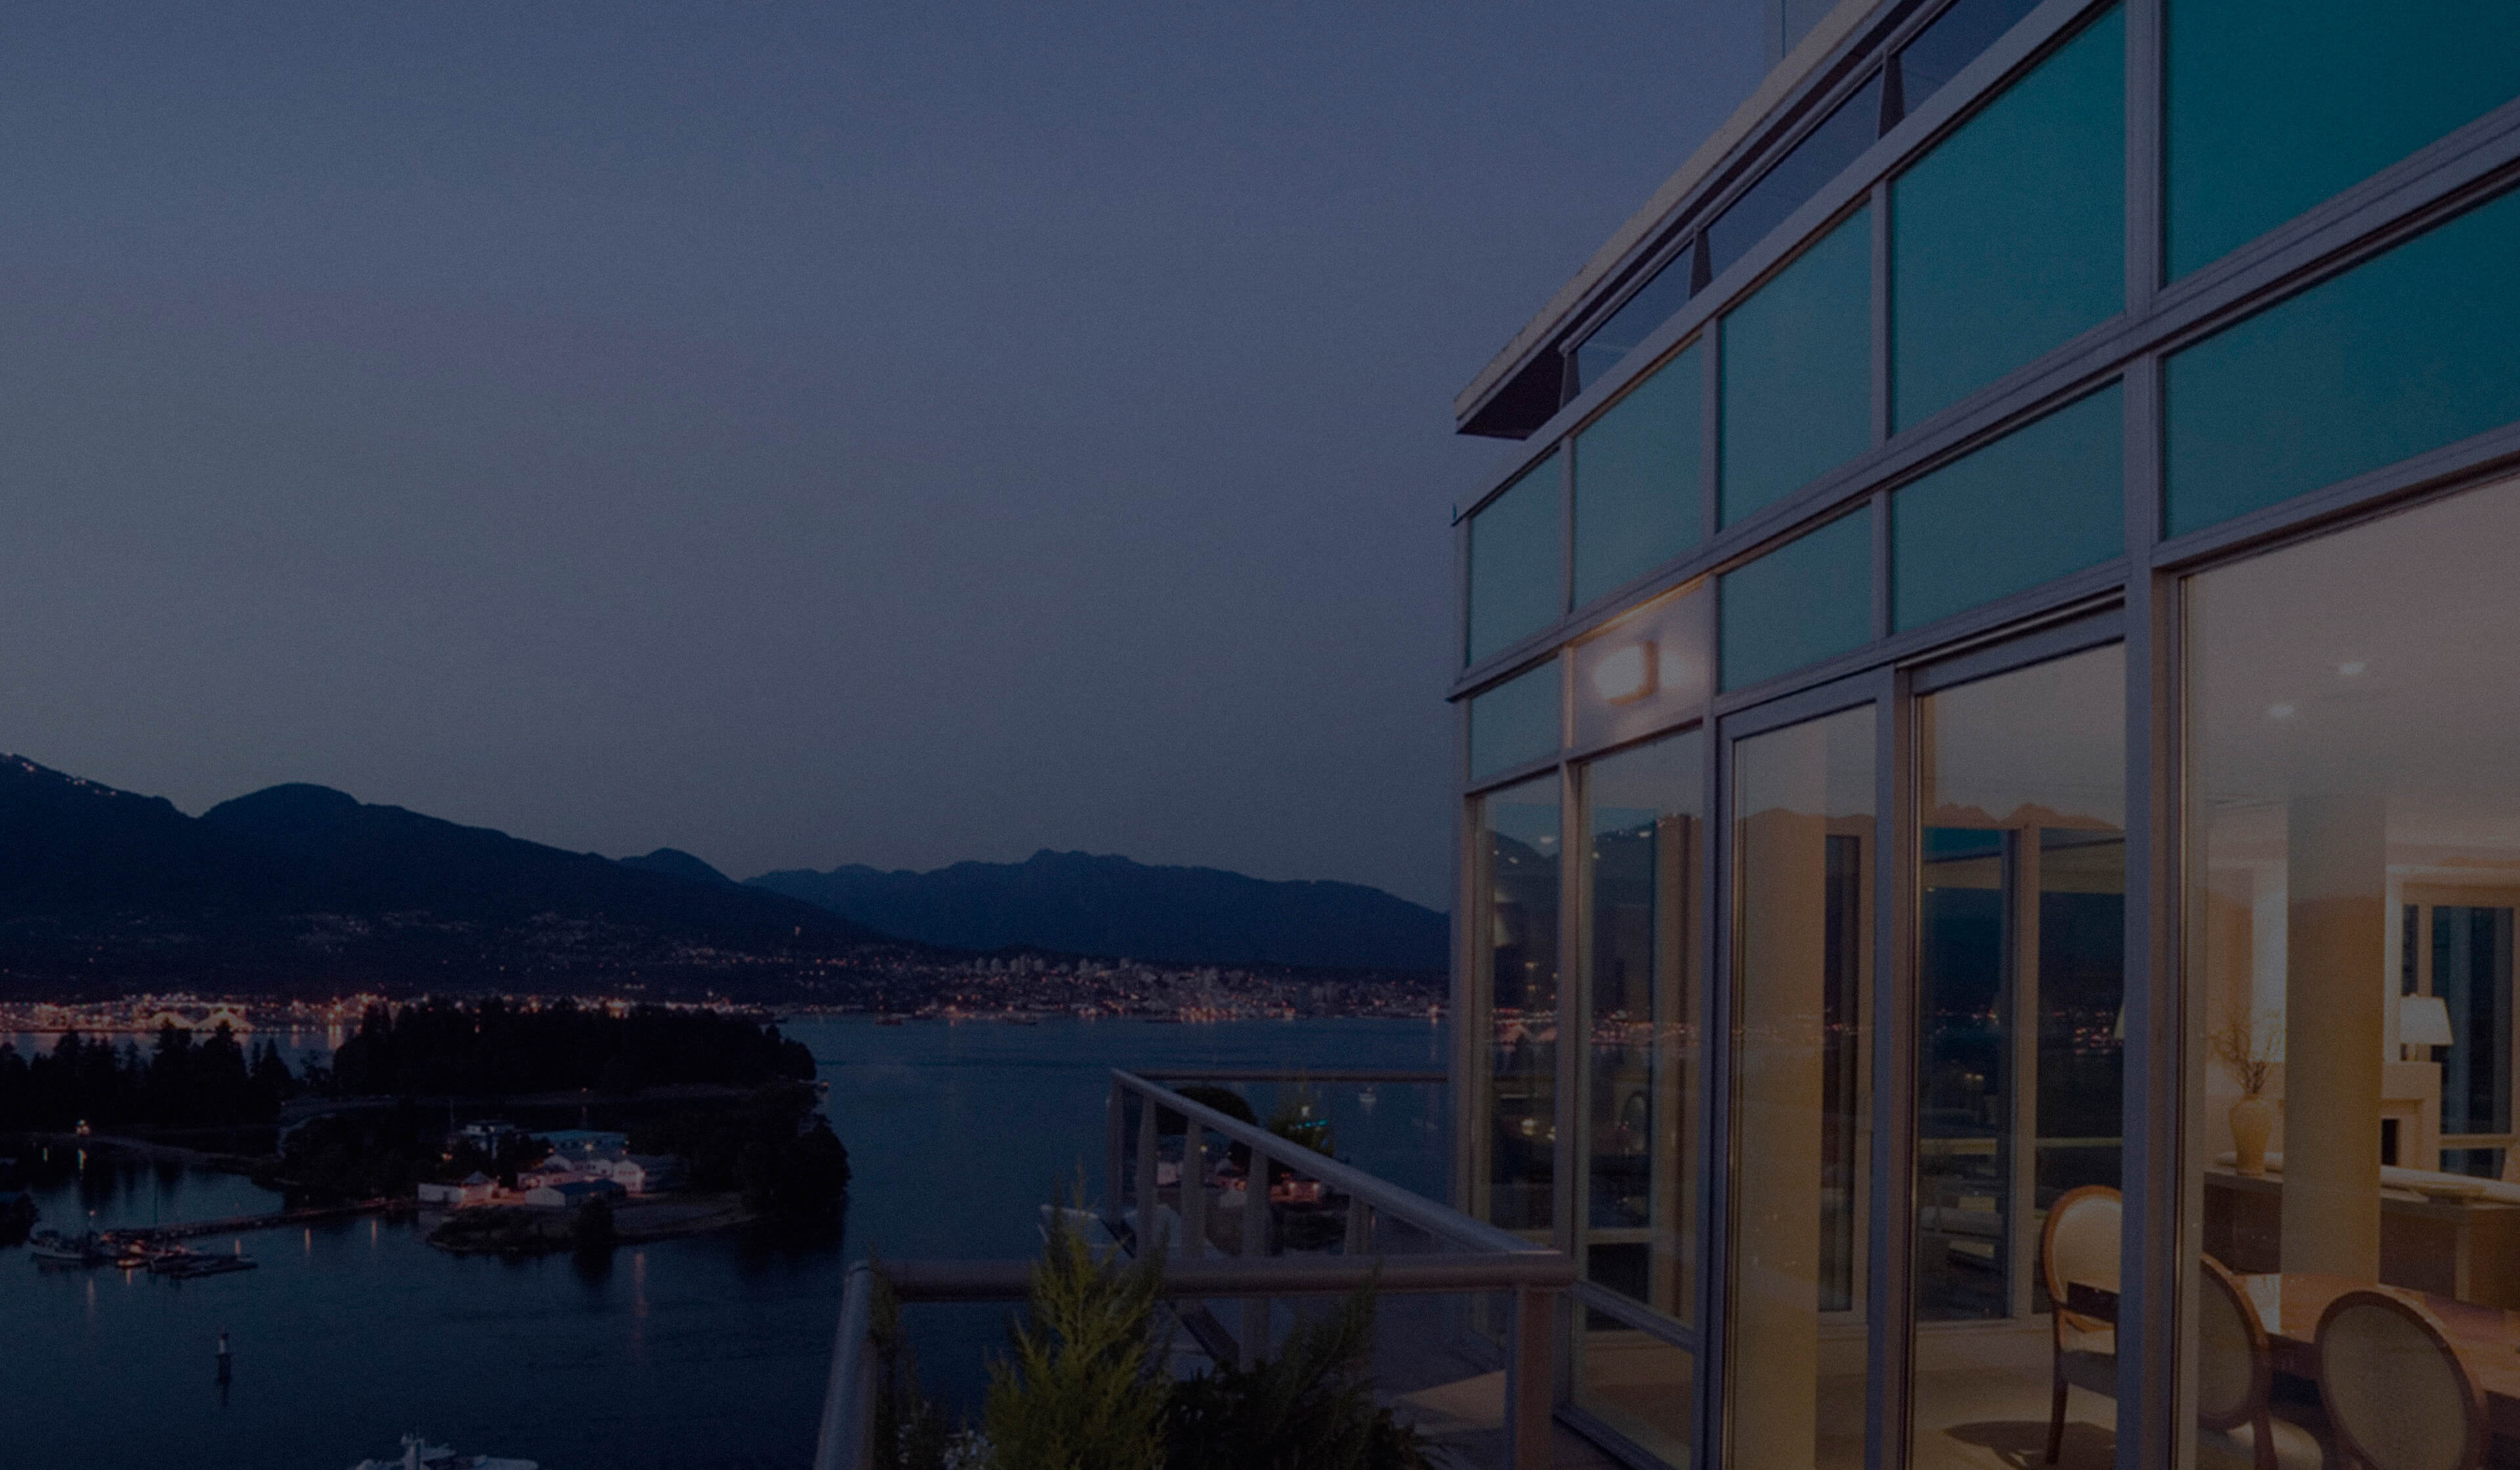 Deck of a modern high-rise building overlooking marina, harbor, and mountains.